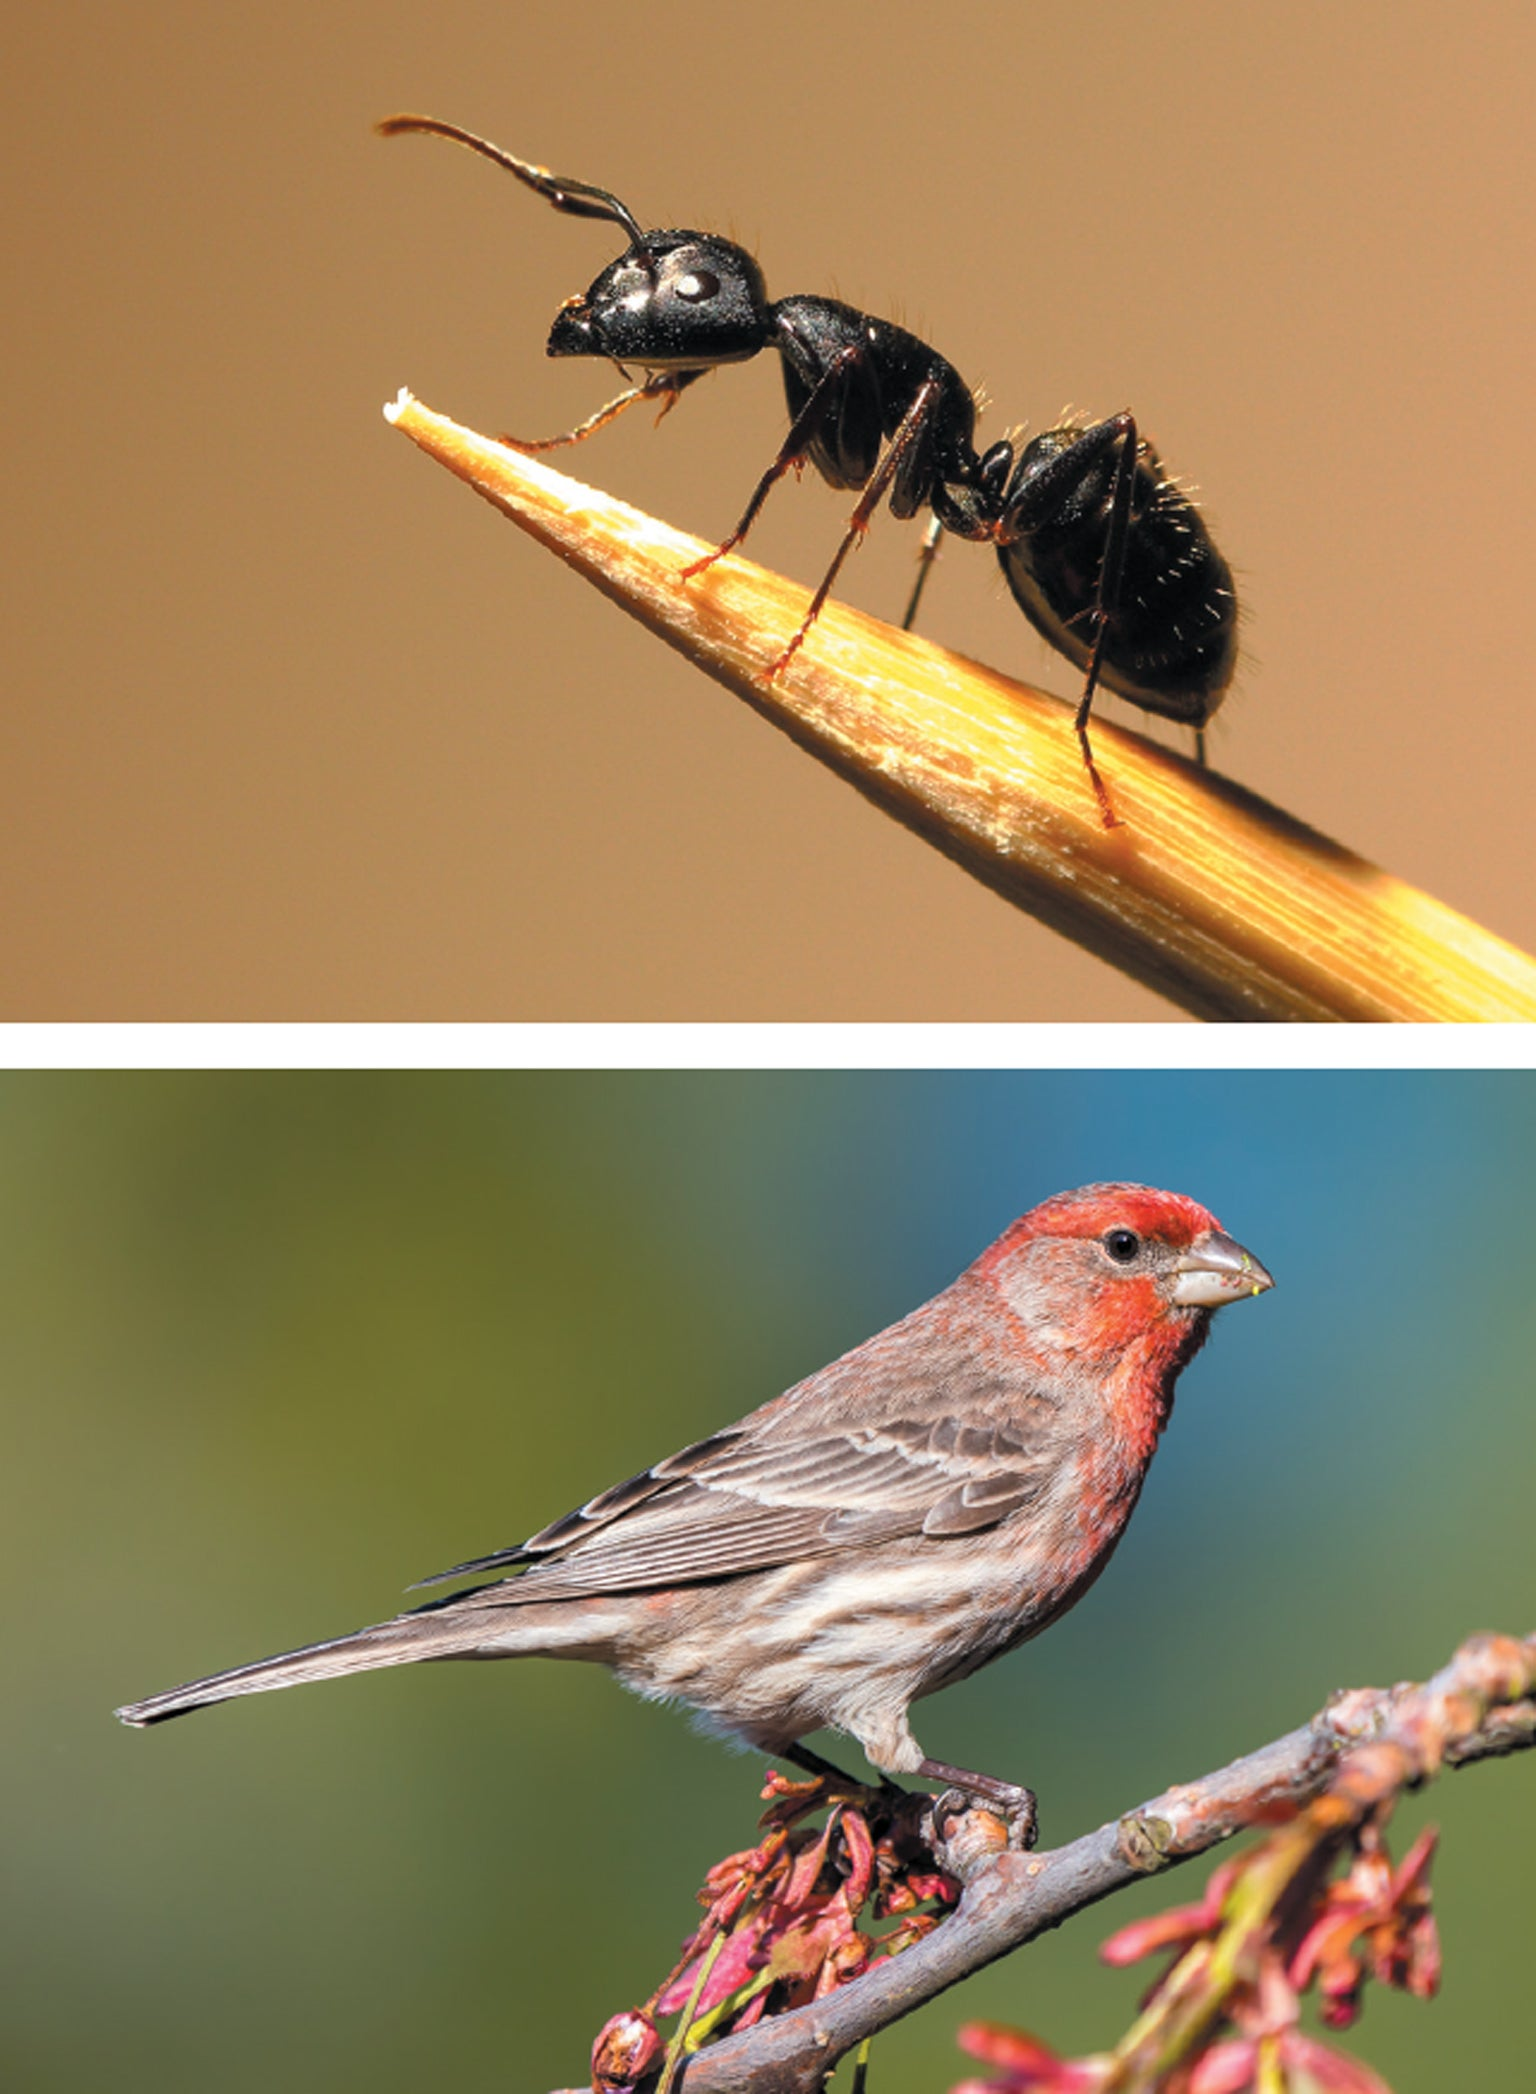 Garden ants and House finches